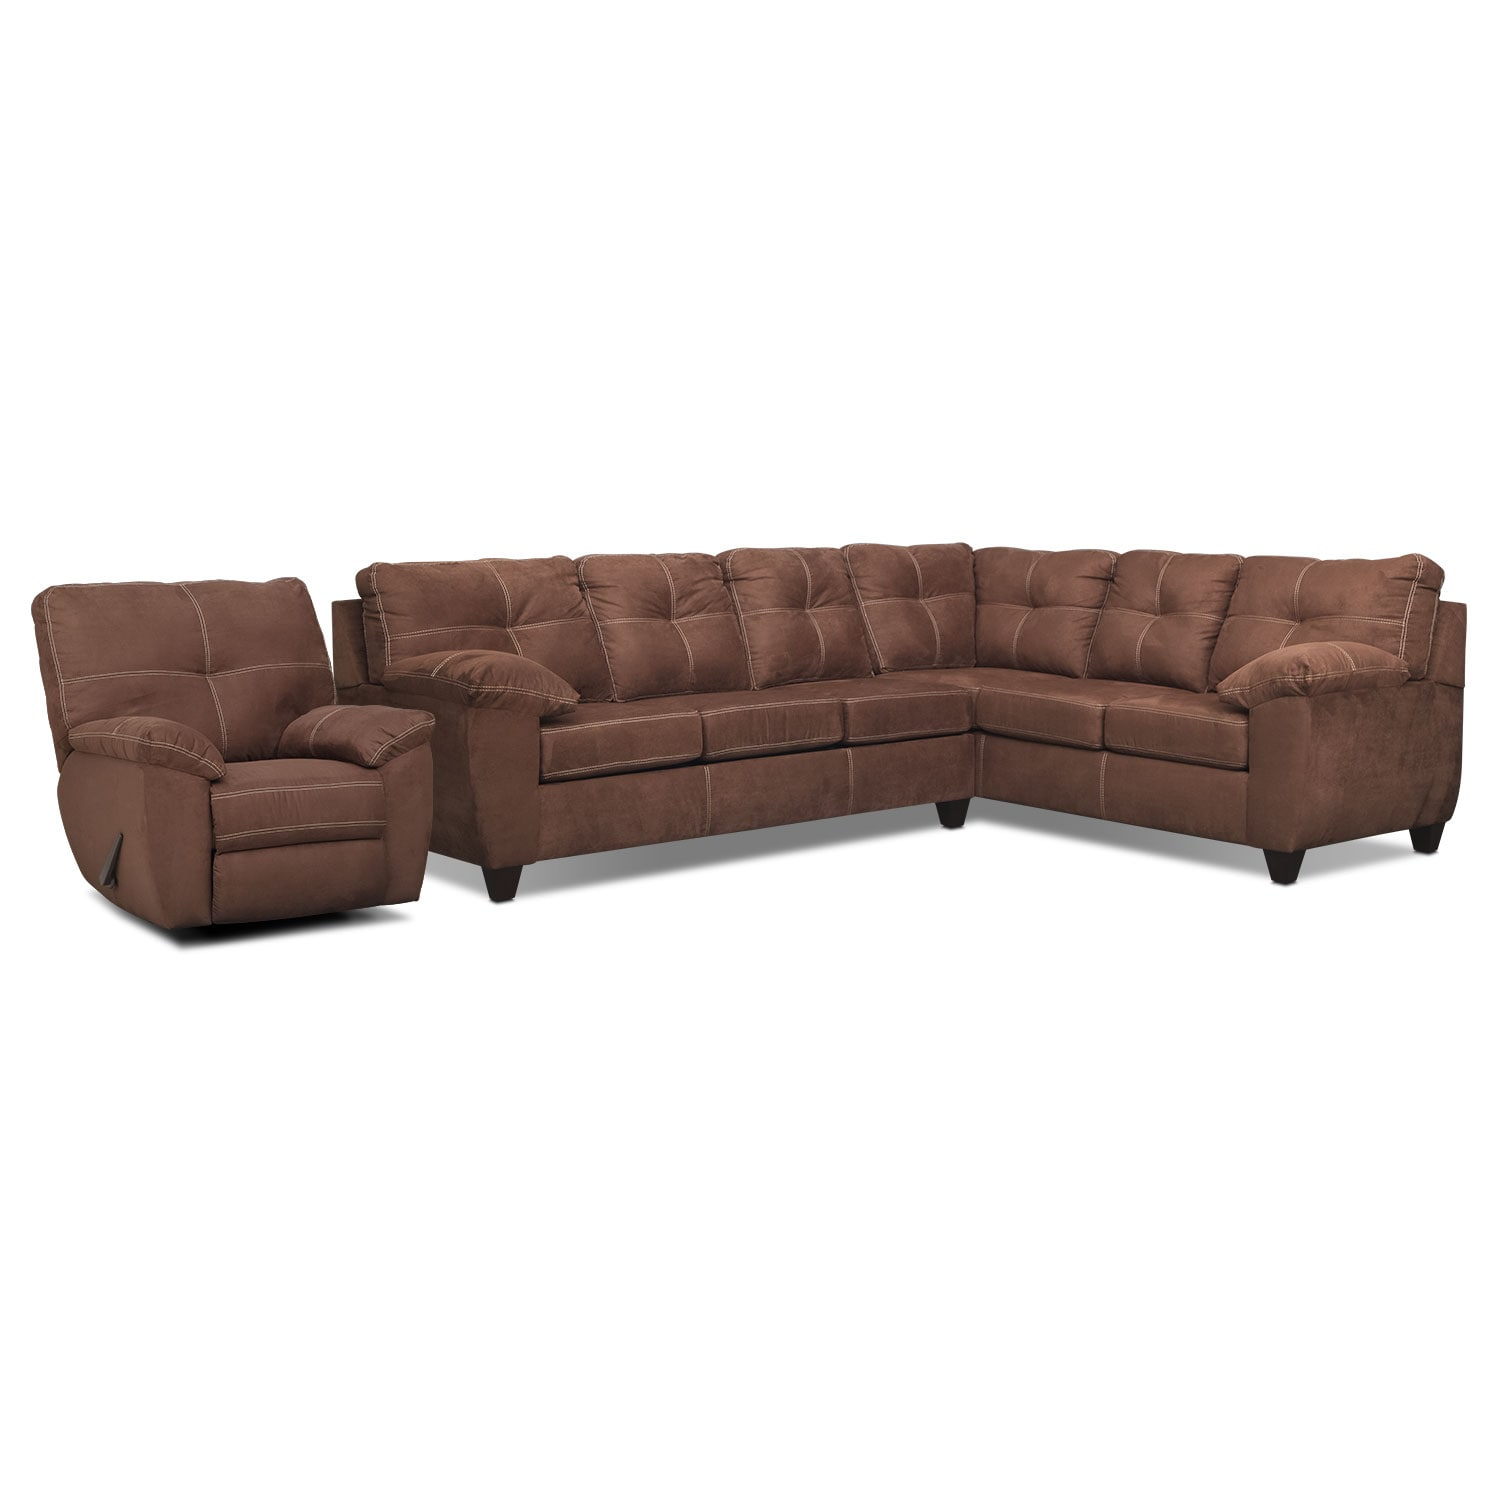 Living Room Furniture - Rialto Coffee 2 Pc. Right-Facing Sofa Sectional and Glider Recliner